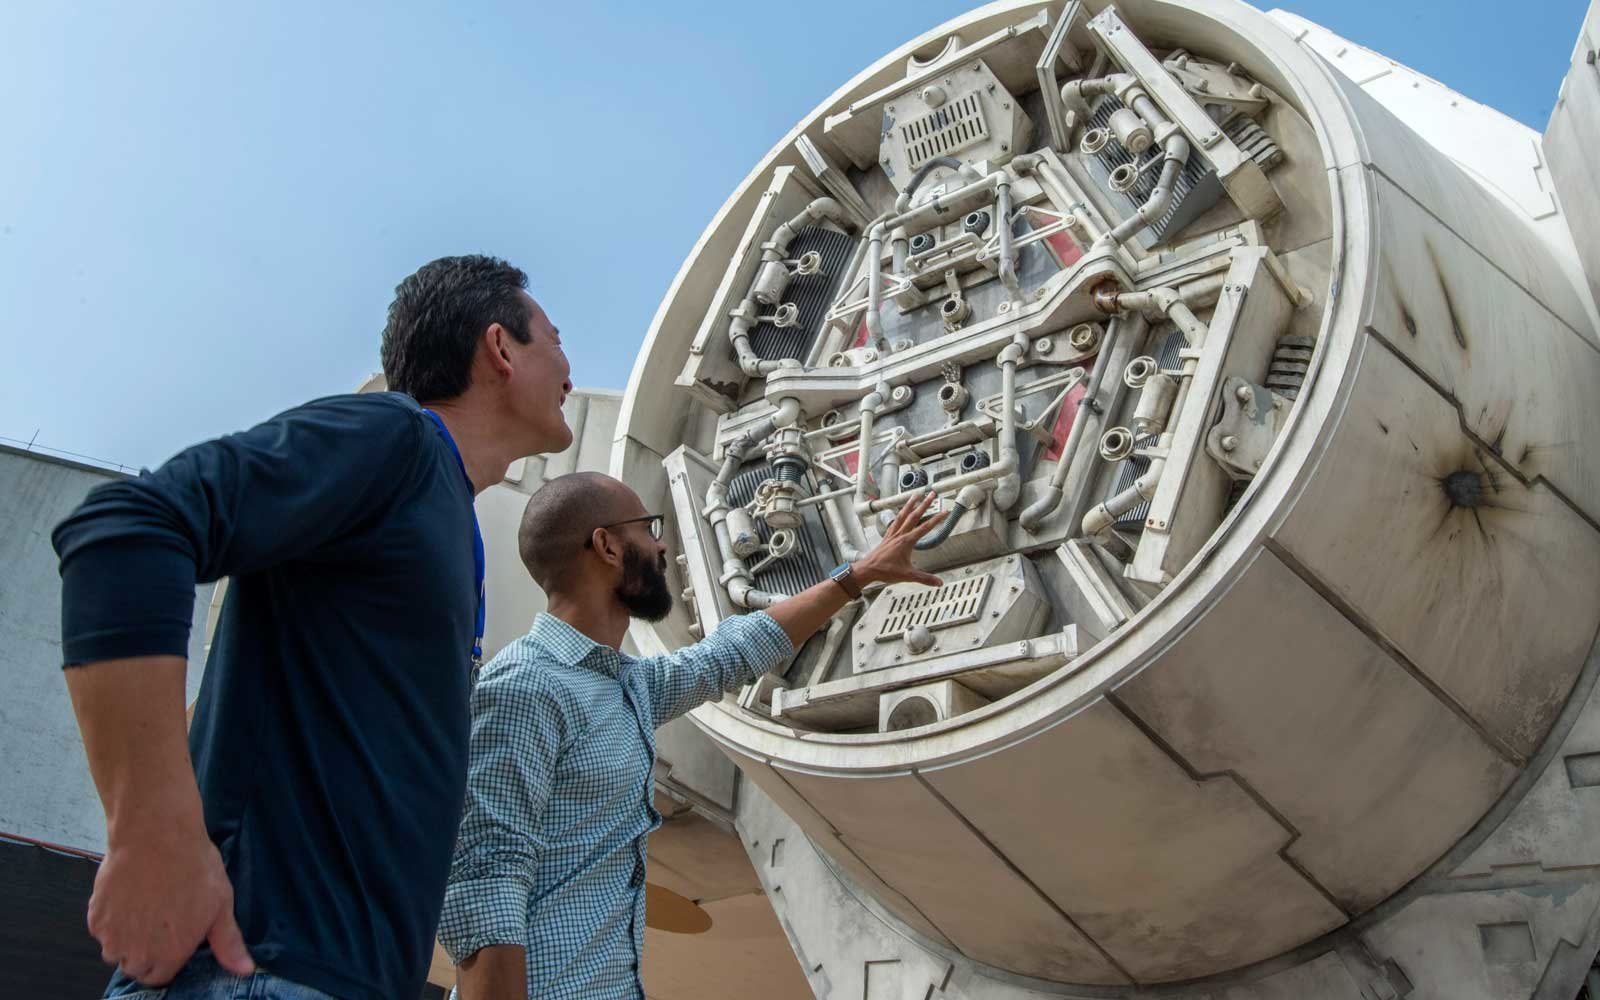 Here S Our First Behind The Scenes Look At Disney S Star Wars Millennium Falcon Ride Travel